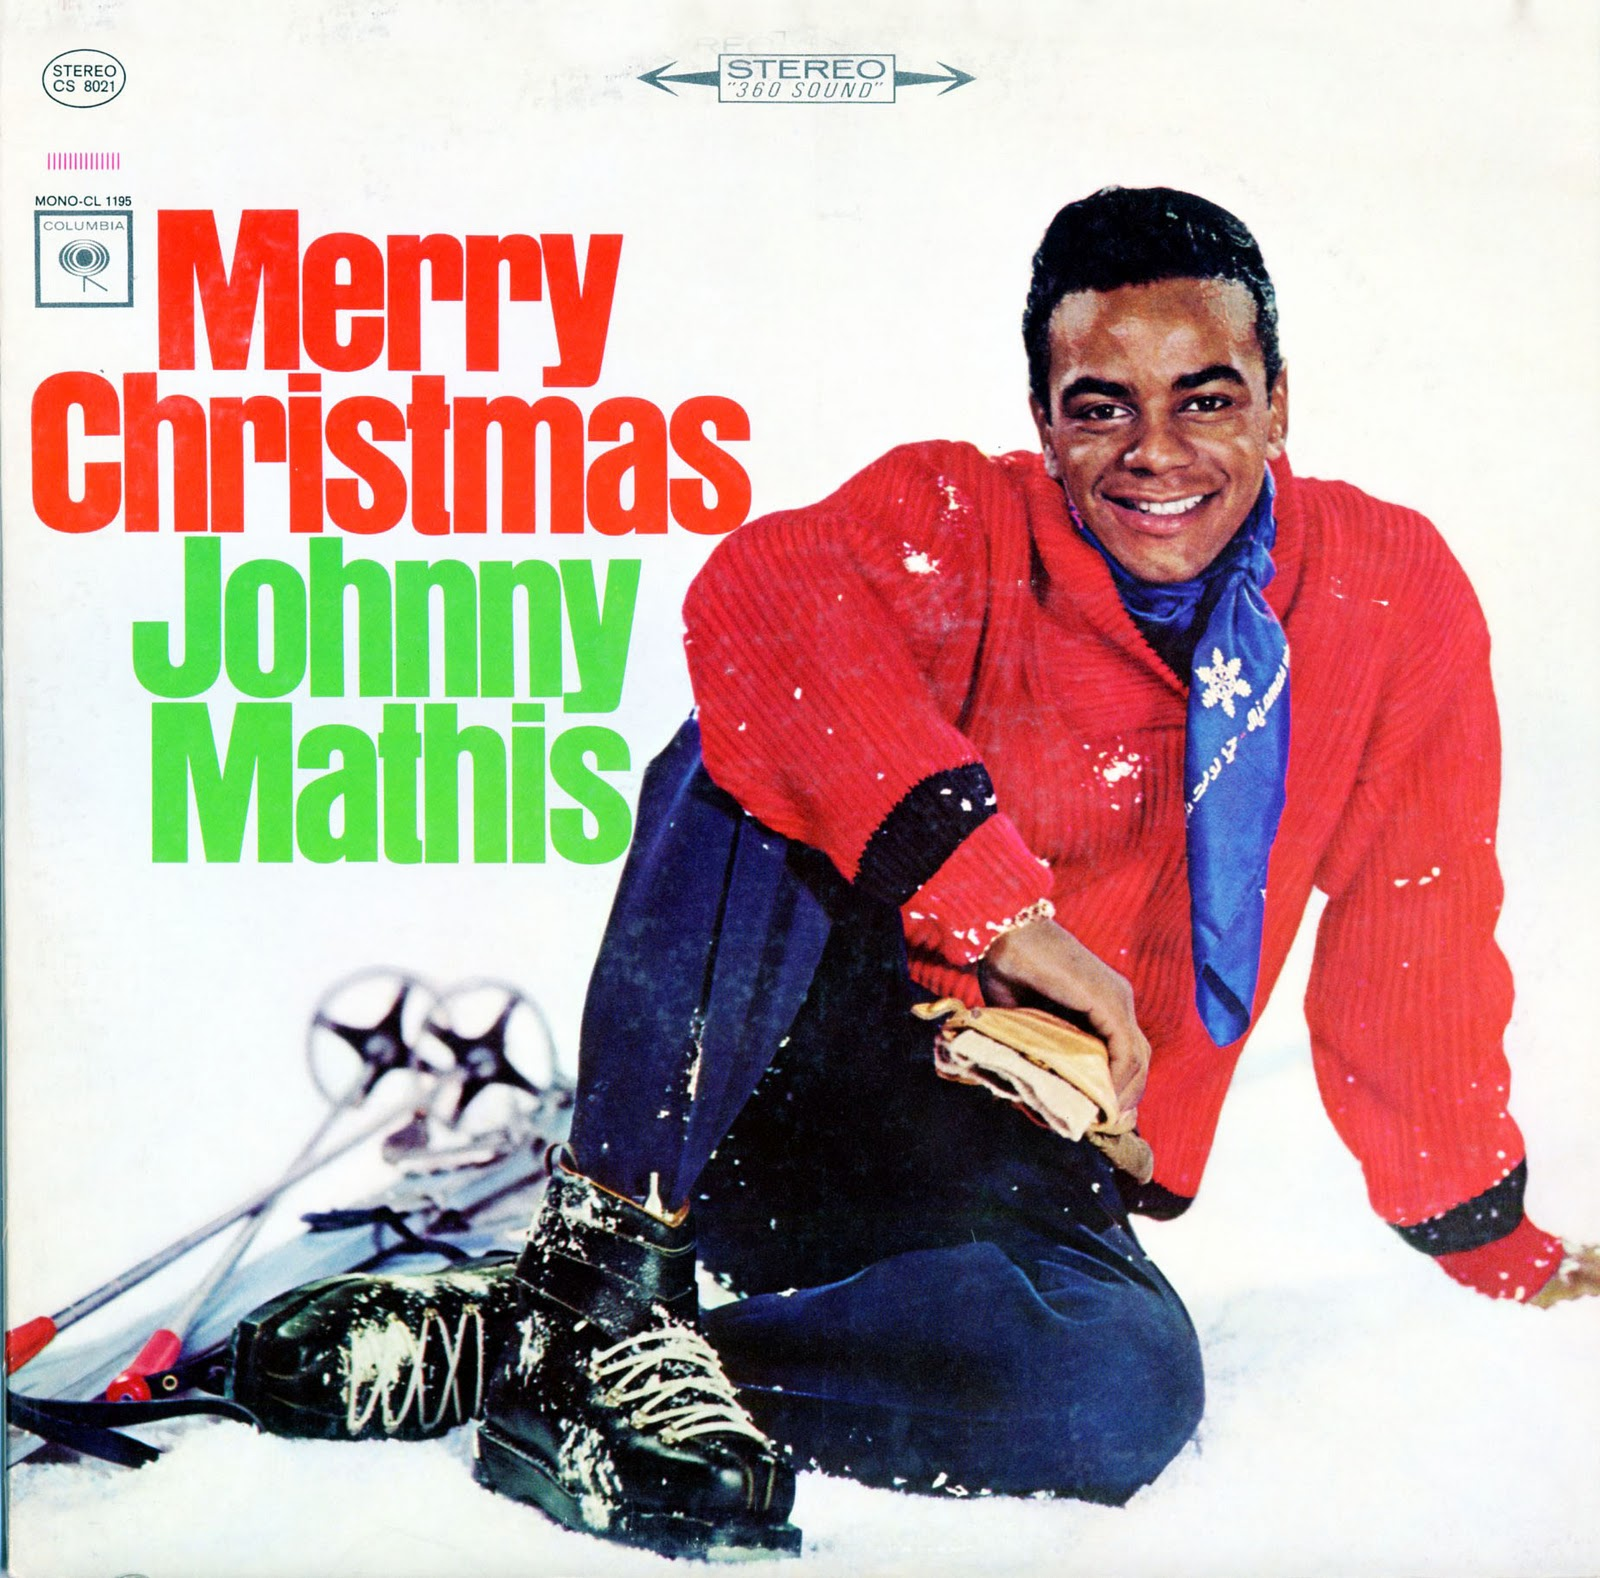 merry christmas johnny mathis columbia records 1959 reissued with new cover artwork